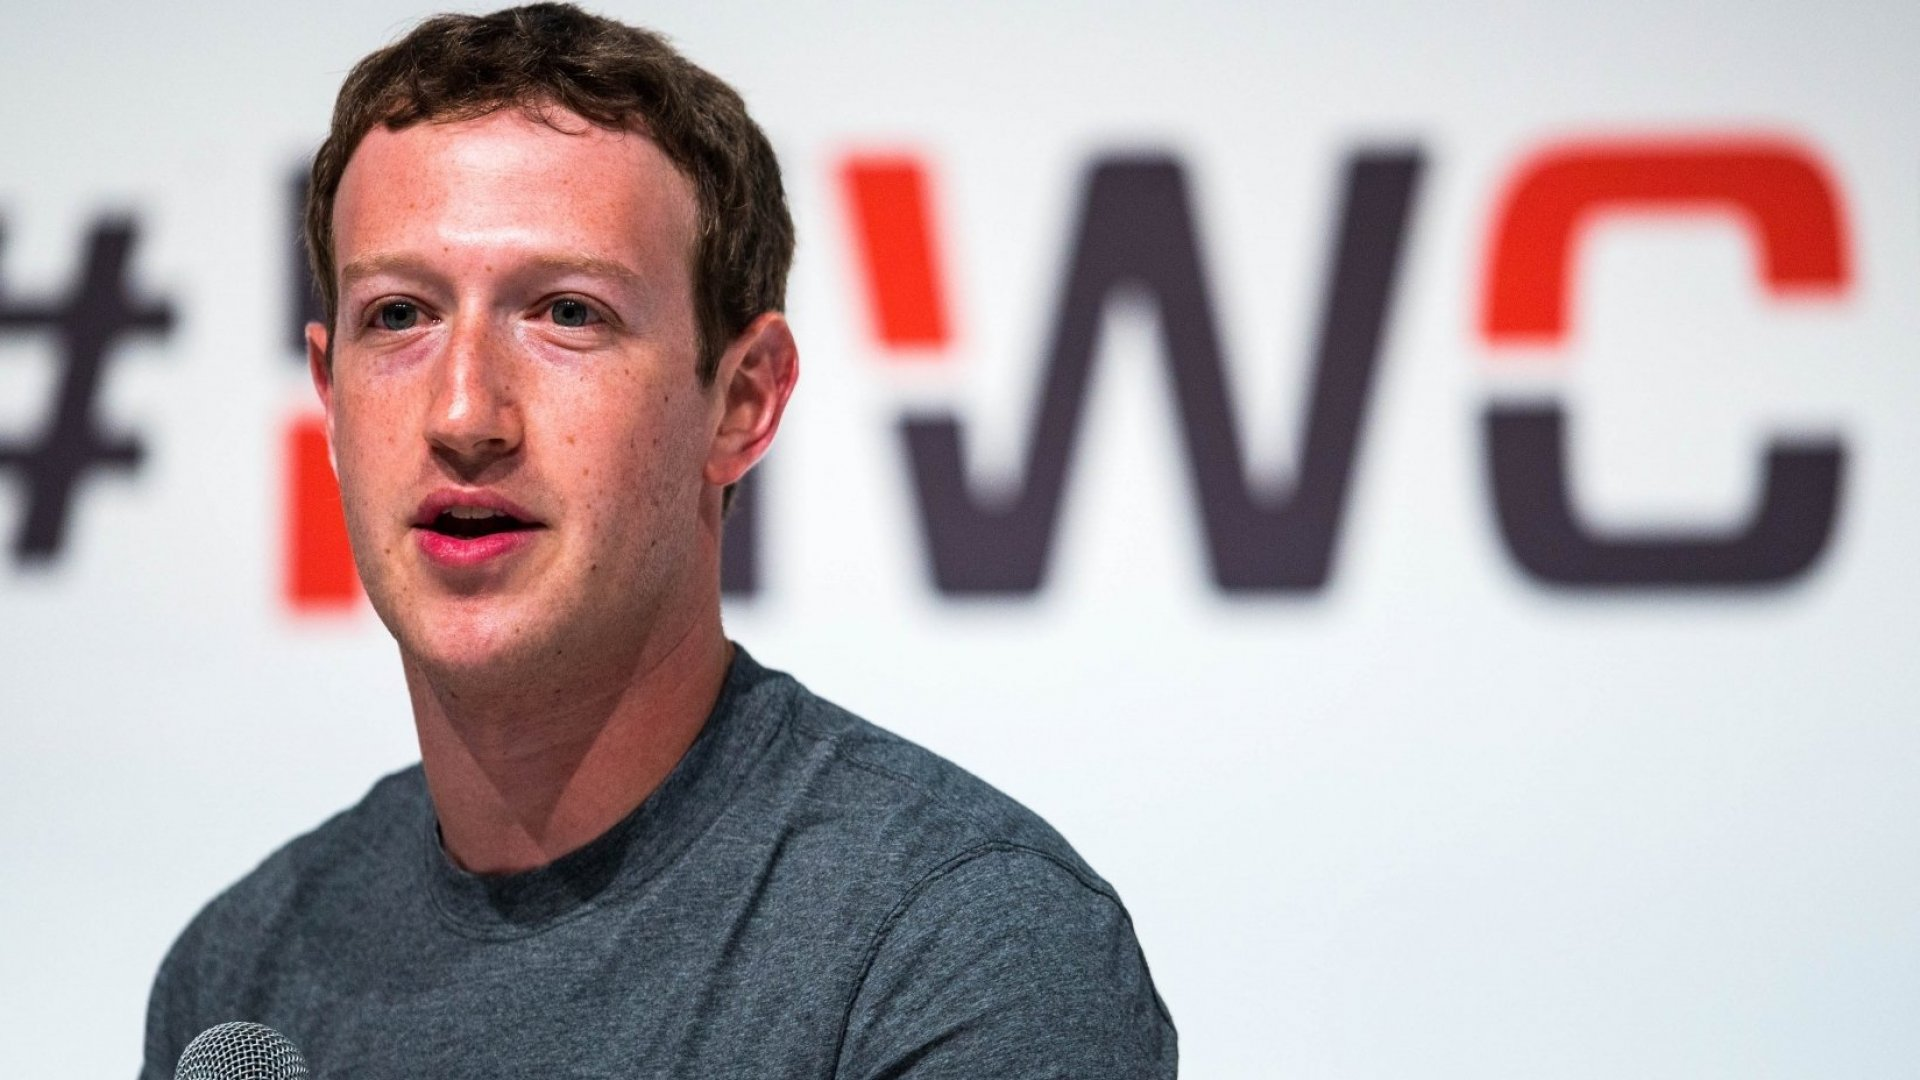 Facebook CEO Mark Zuckerberg Calls Marc Andreessen's Comments on India 'Deeply Upsetting'